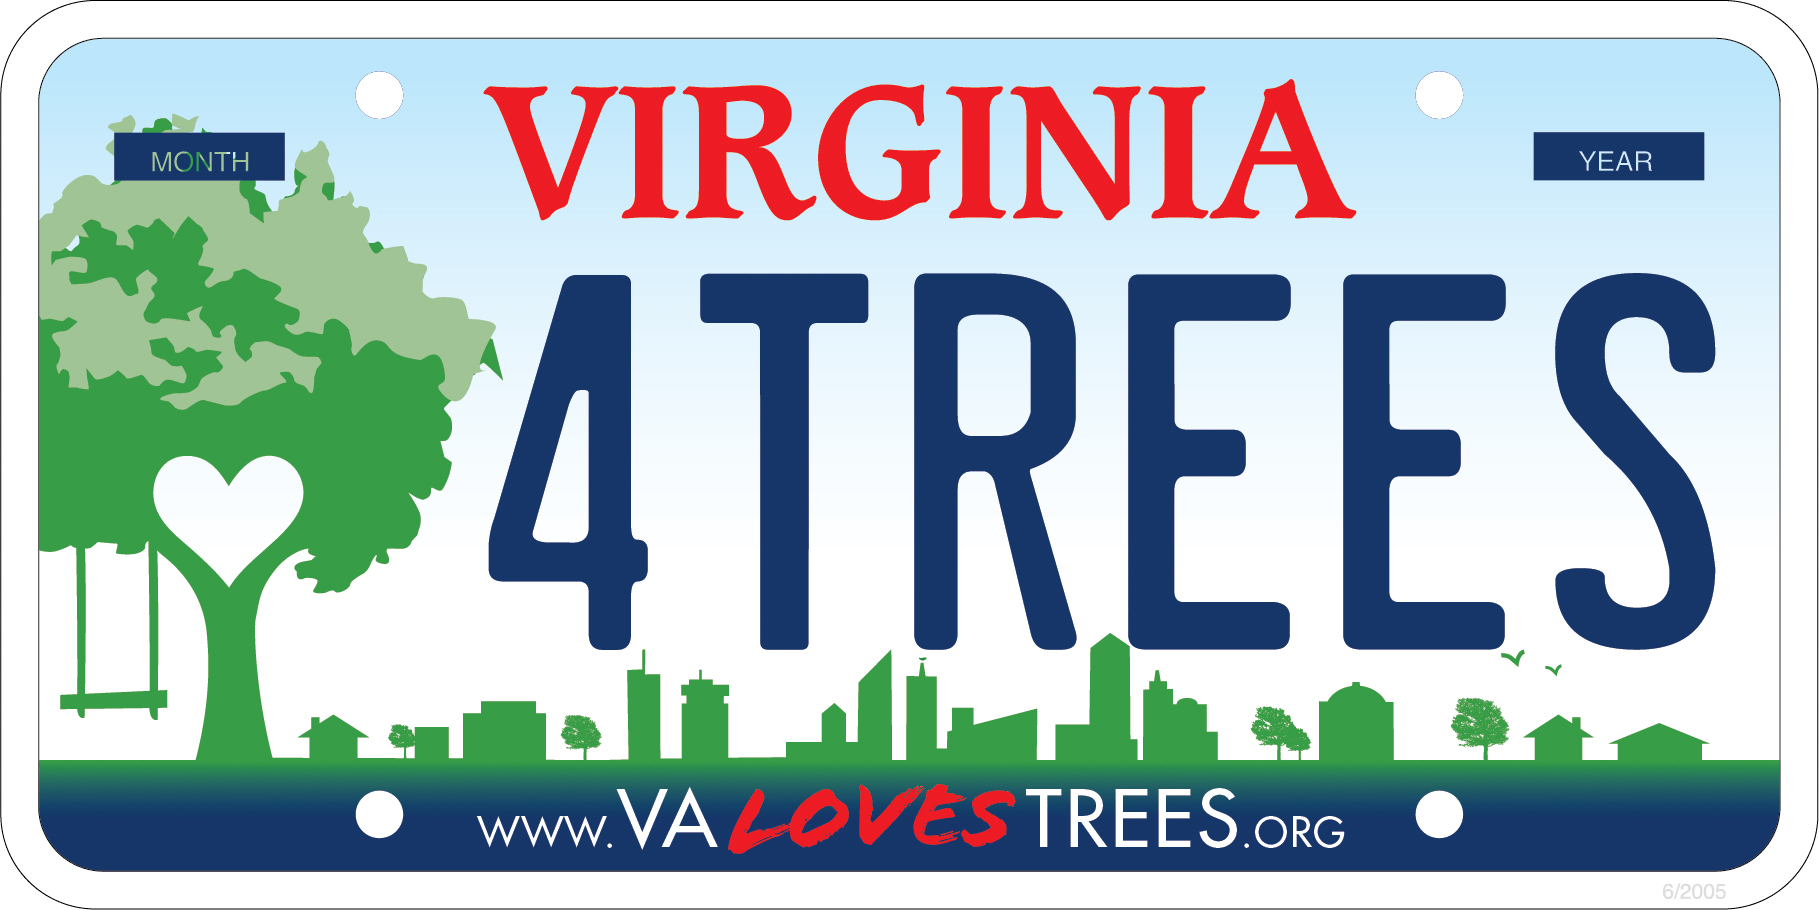 Design of the Virginia Loves Trees license plate, with a tree to the left side and a community skyline in the background.